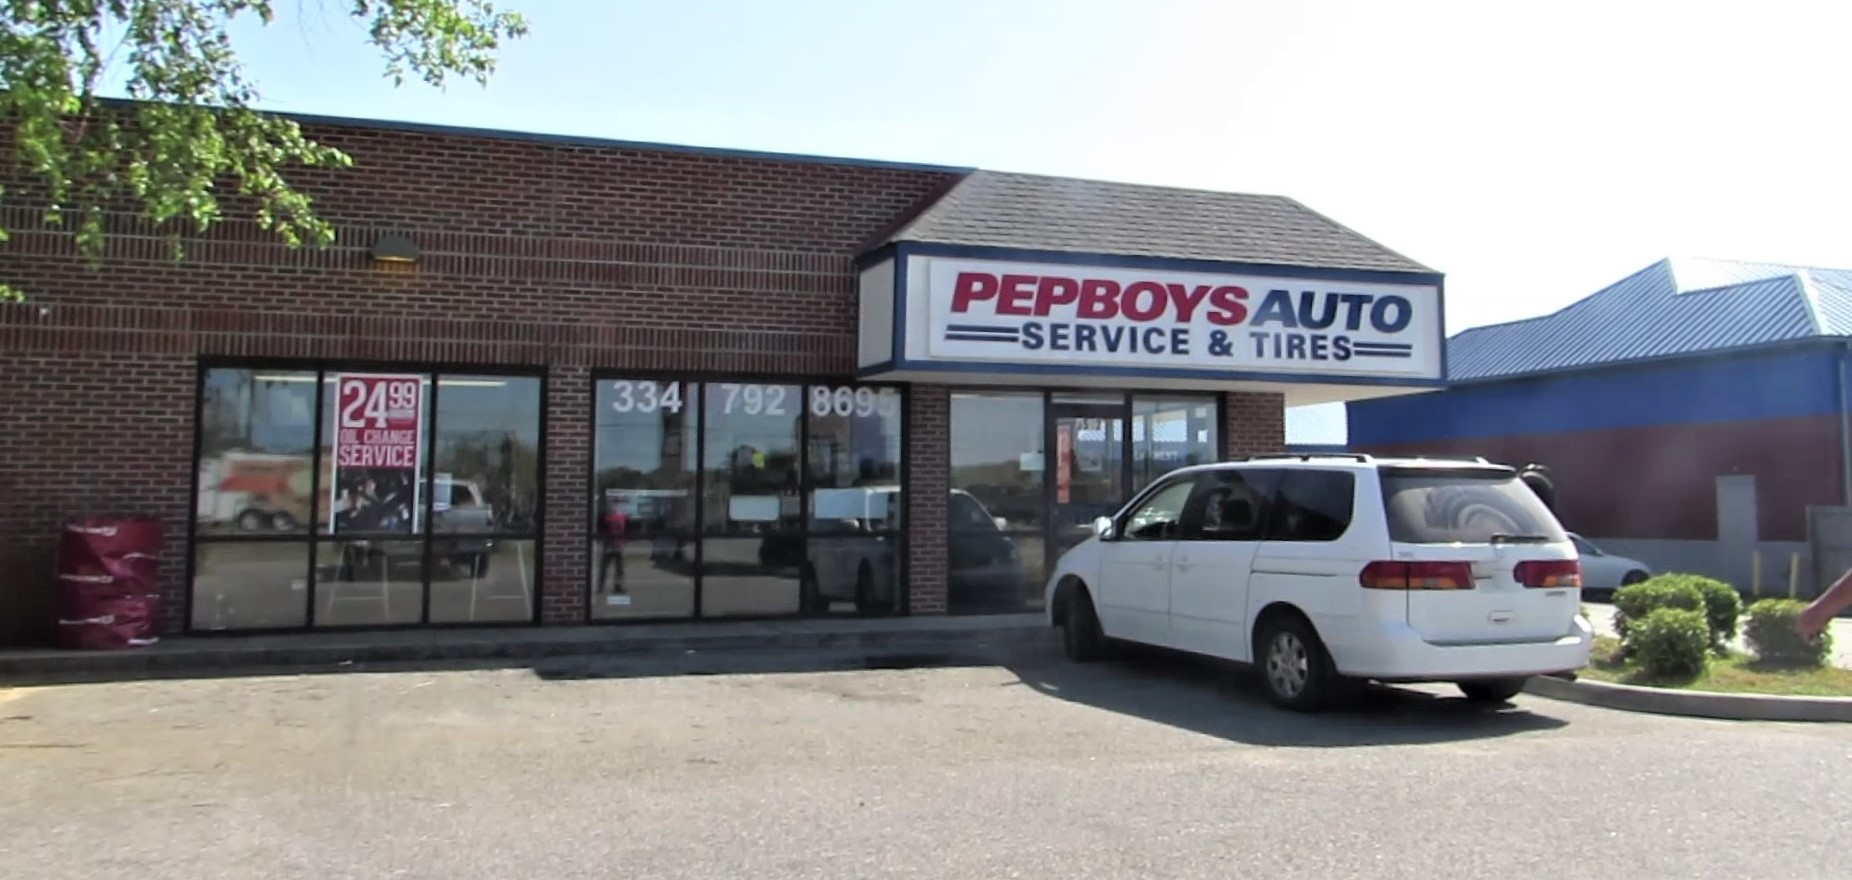 My Daughter Is A Victim Of Pep Boys!